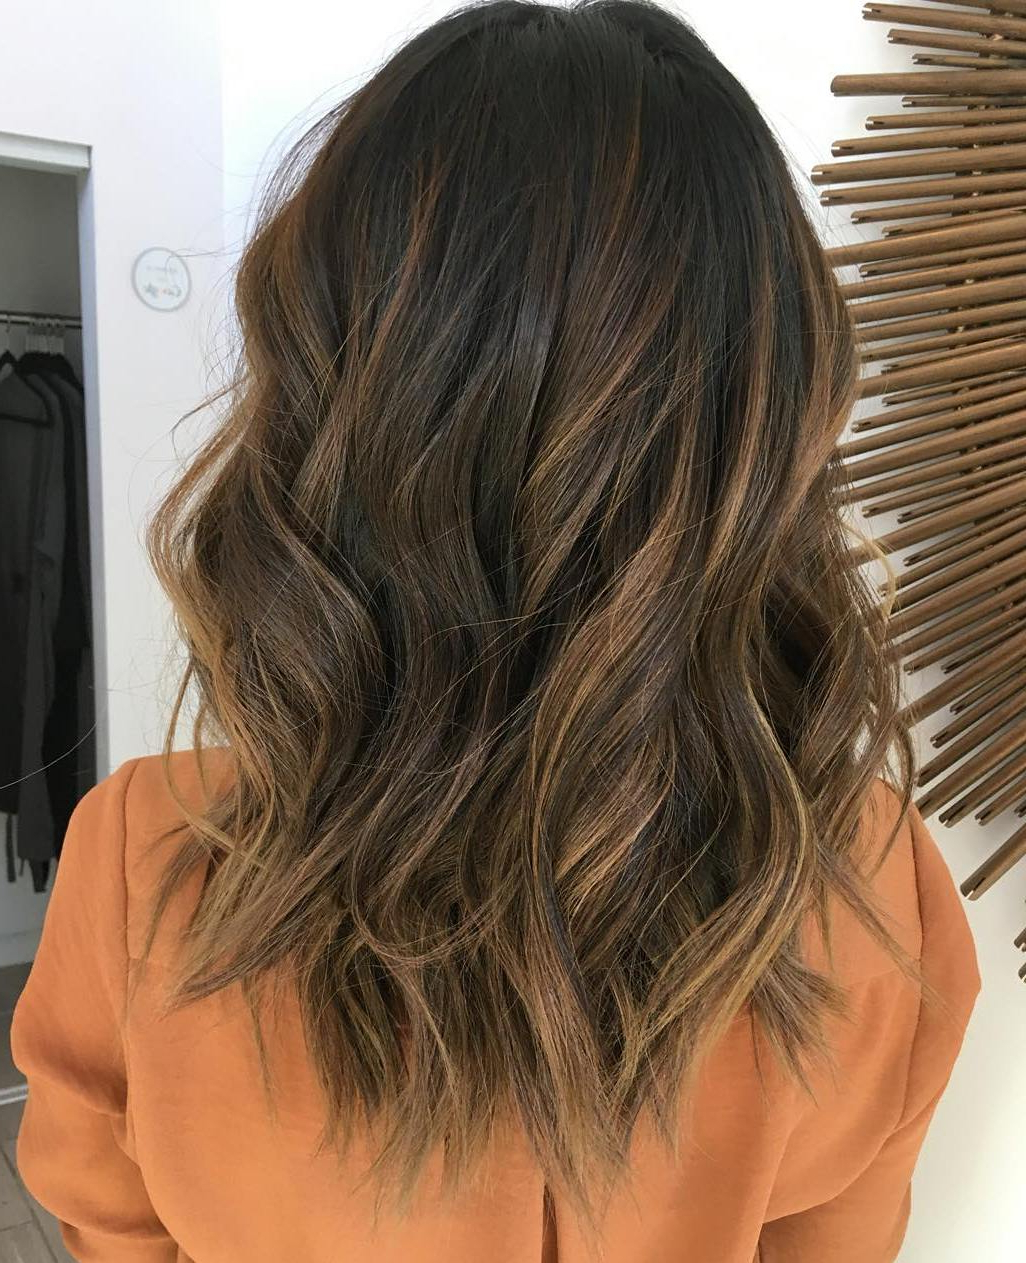 5 Medium Dark Brown Hair With Caramel Balayage – Menhairdos In Most Up To Date Easy Side Downdo Hairstyles With Caramel Highlights (View 4 of 20)